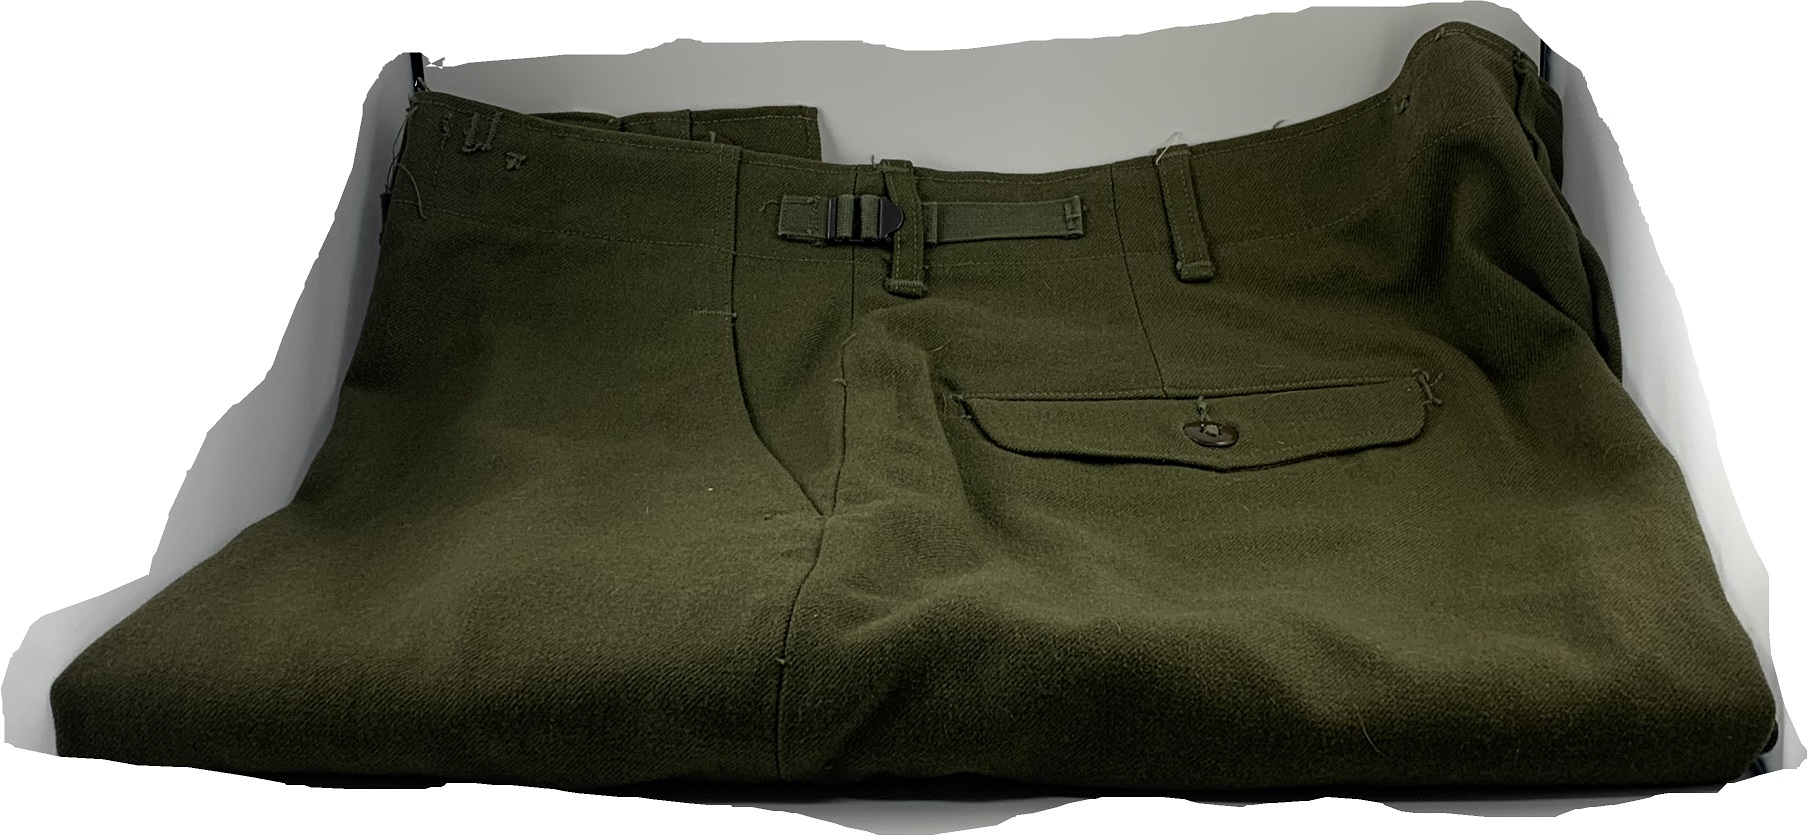 M-1951 Wool Field Trouser Olive Drab Green